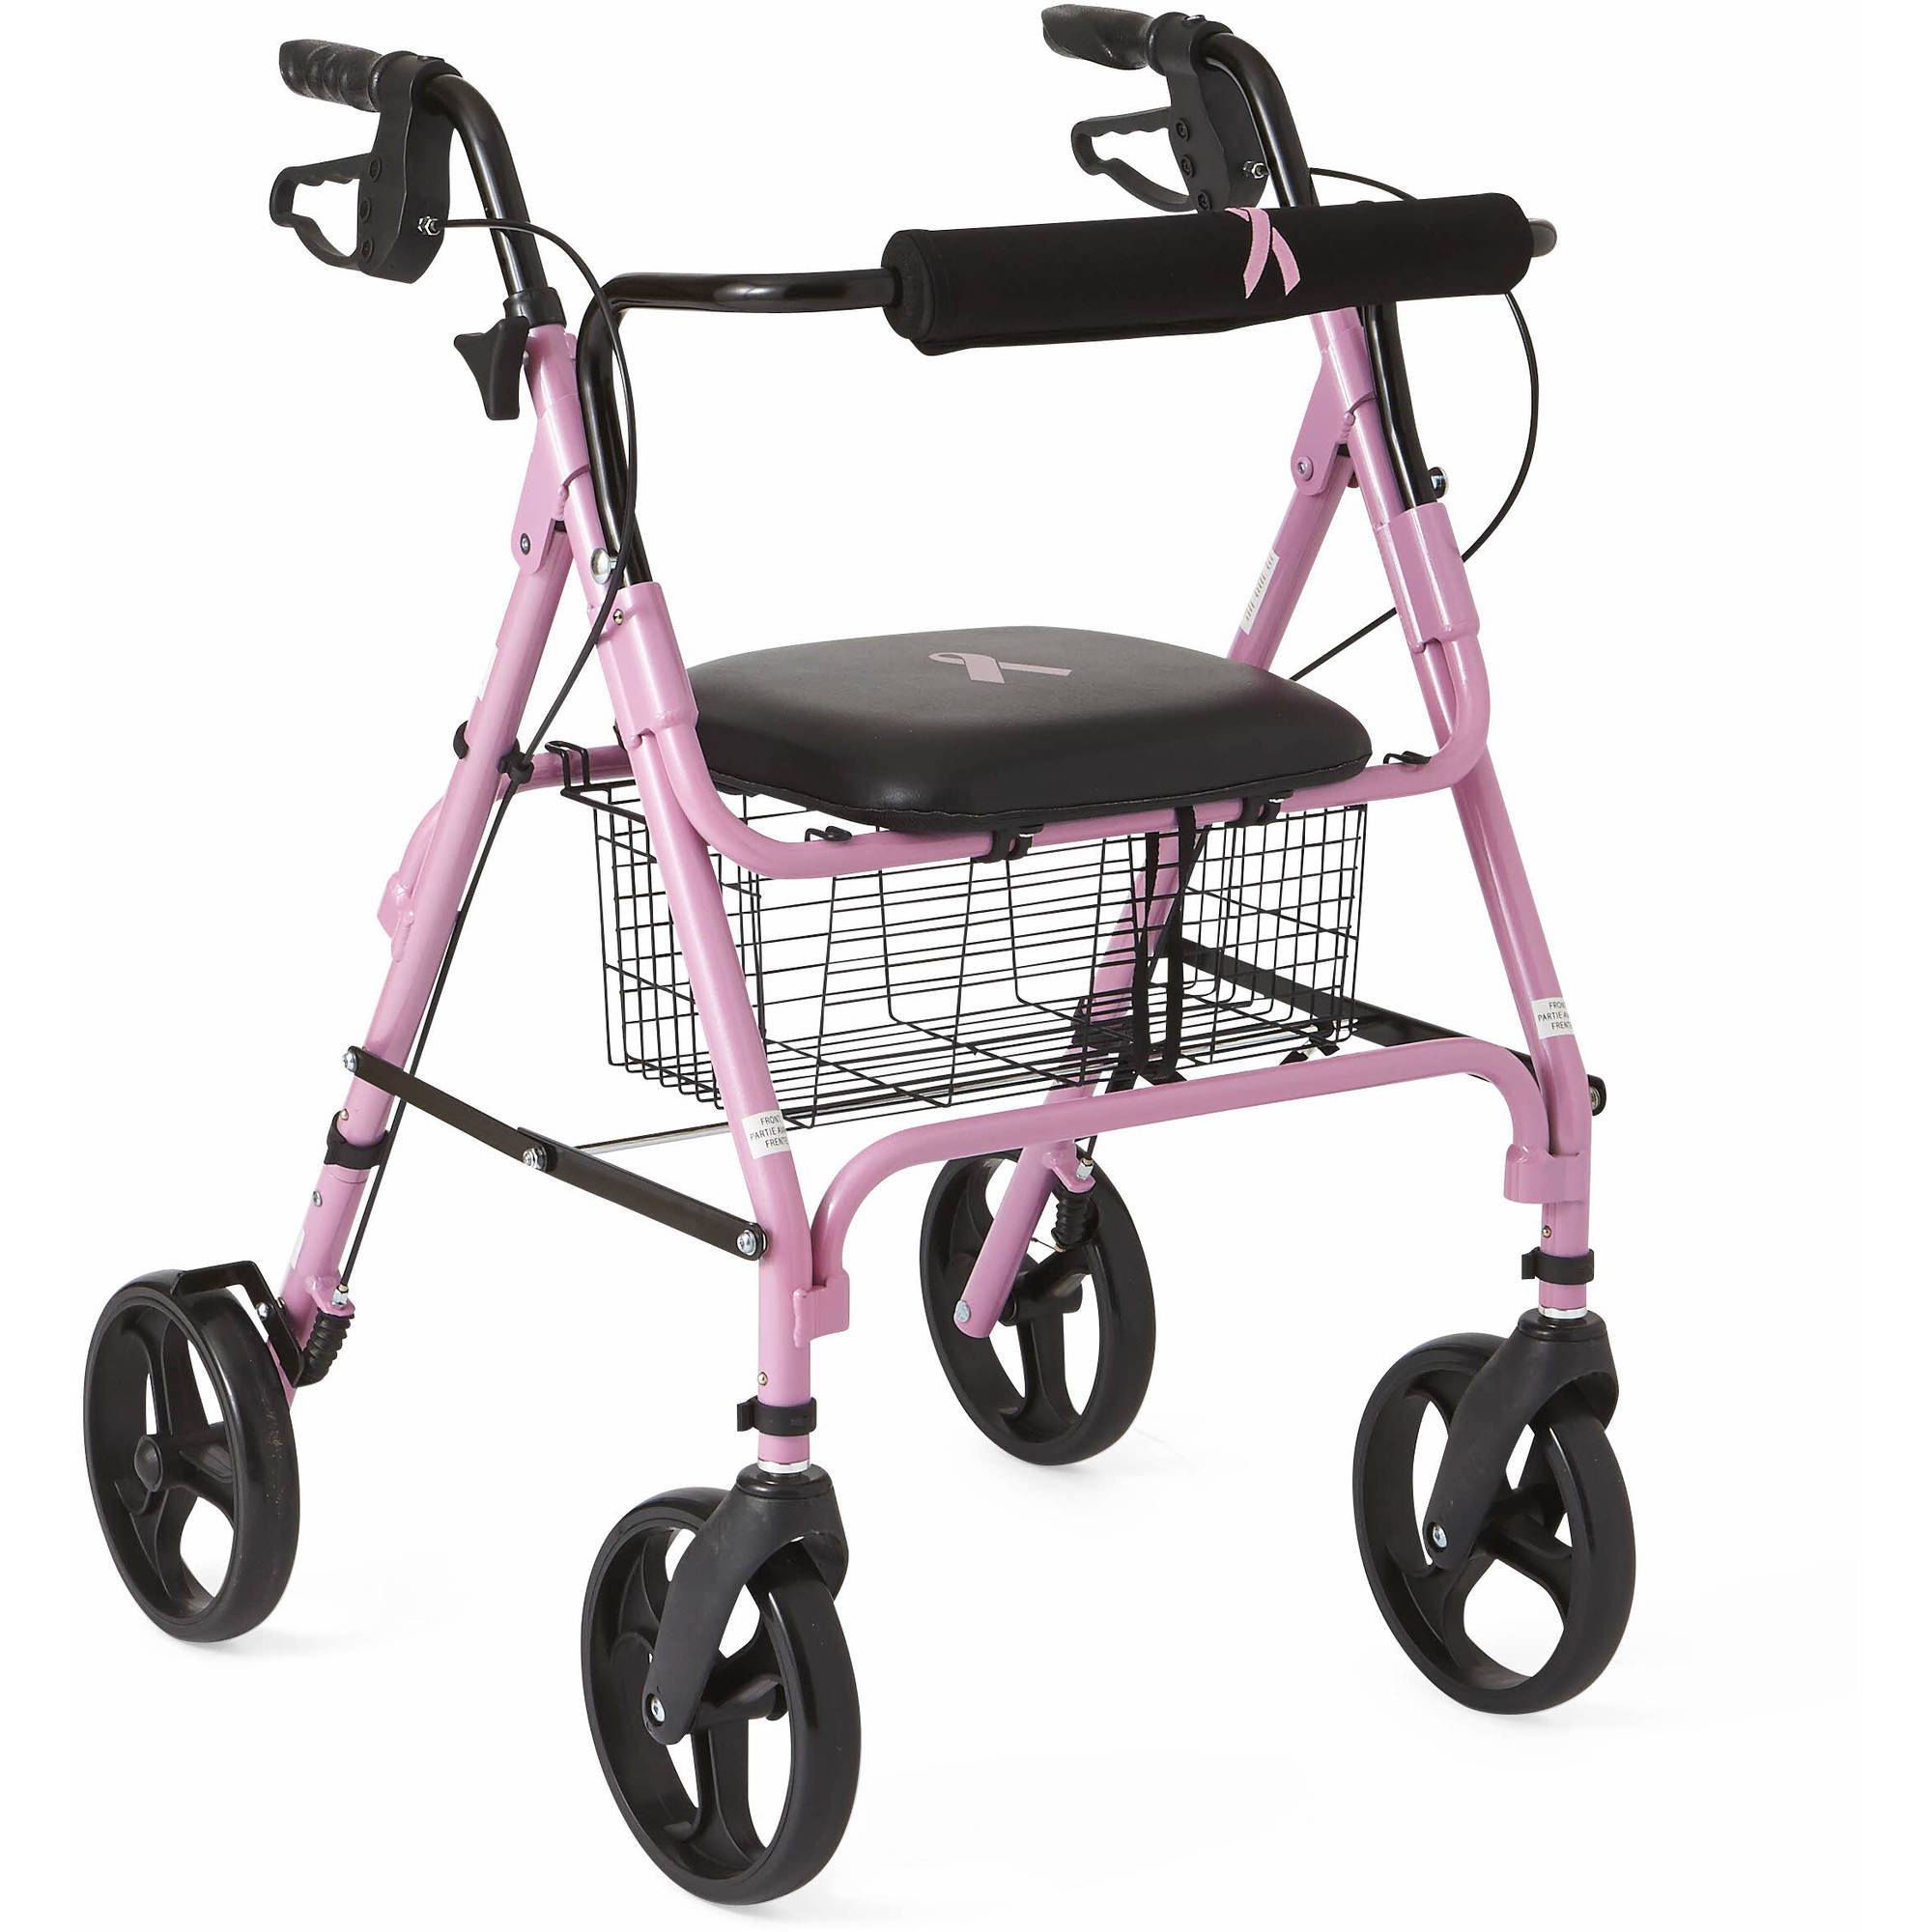 Medline Rollator Walker in Pink, Breast Cancer Awareness Pink Ribbon